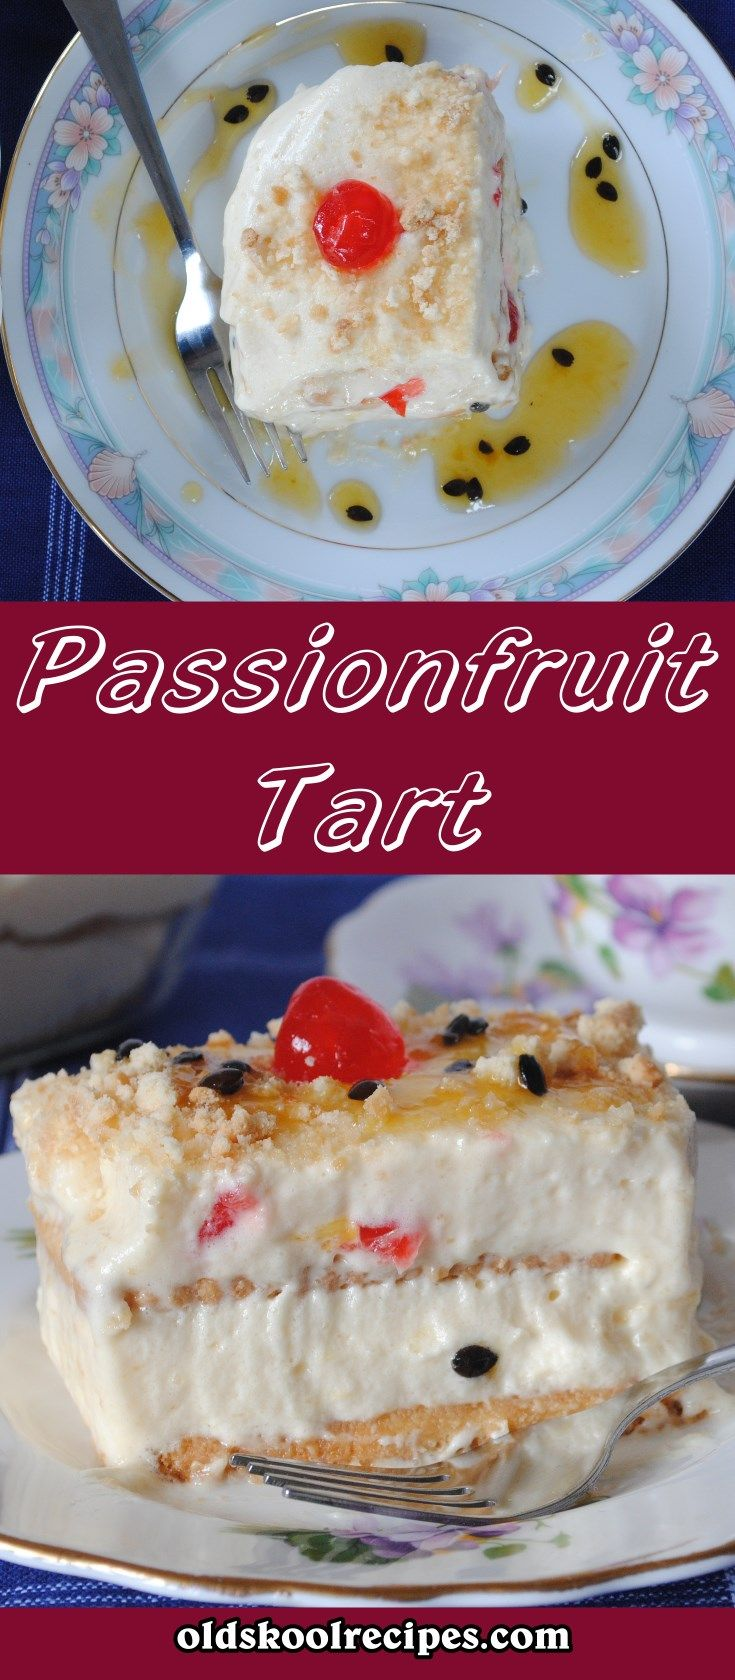 Passionfruit Tart Recipe  This Passionfruit Tart is filled with ripe passionfruit seeds and showcases a  its sweet-spicy flavor.  The passionfruit  tart is delicious quick, easy dessert that requires no baking.